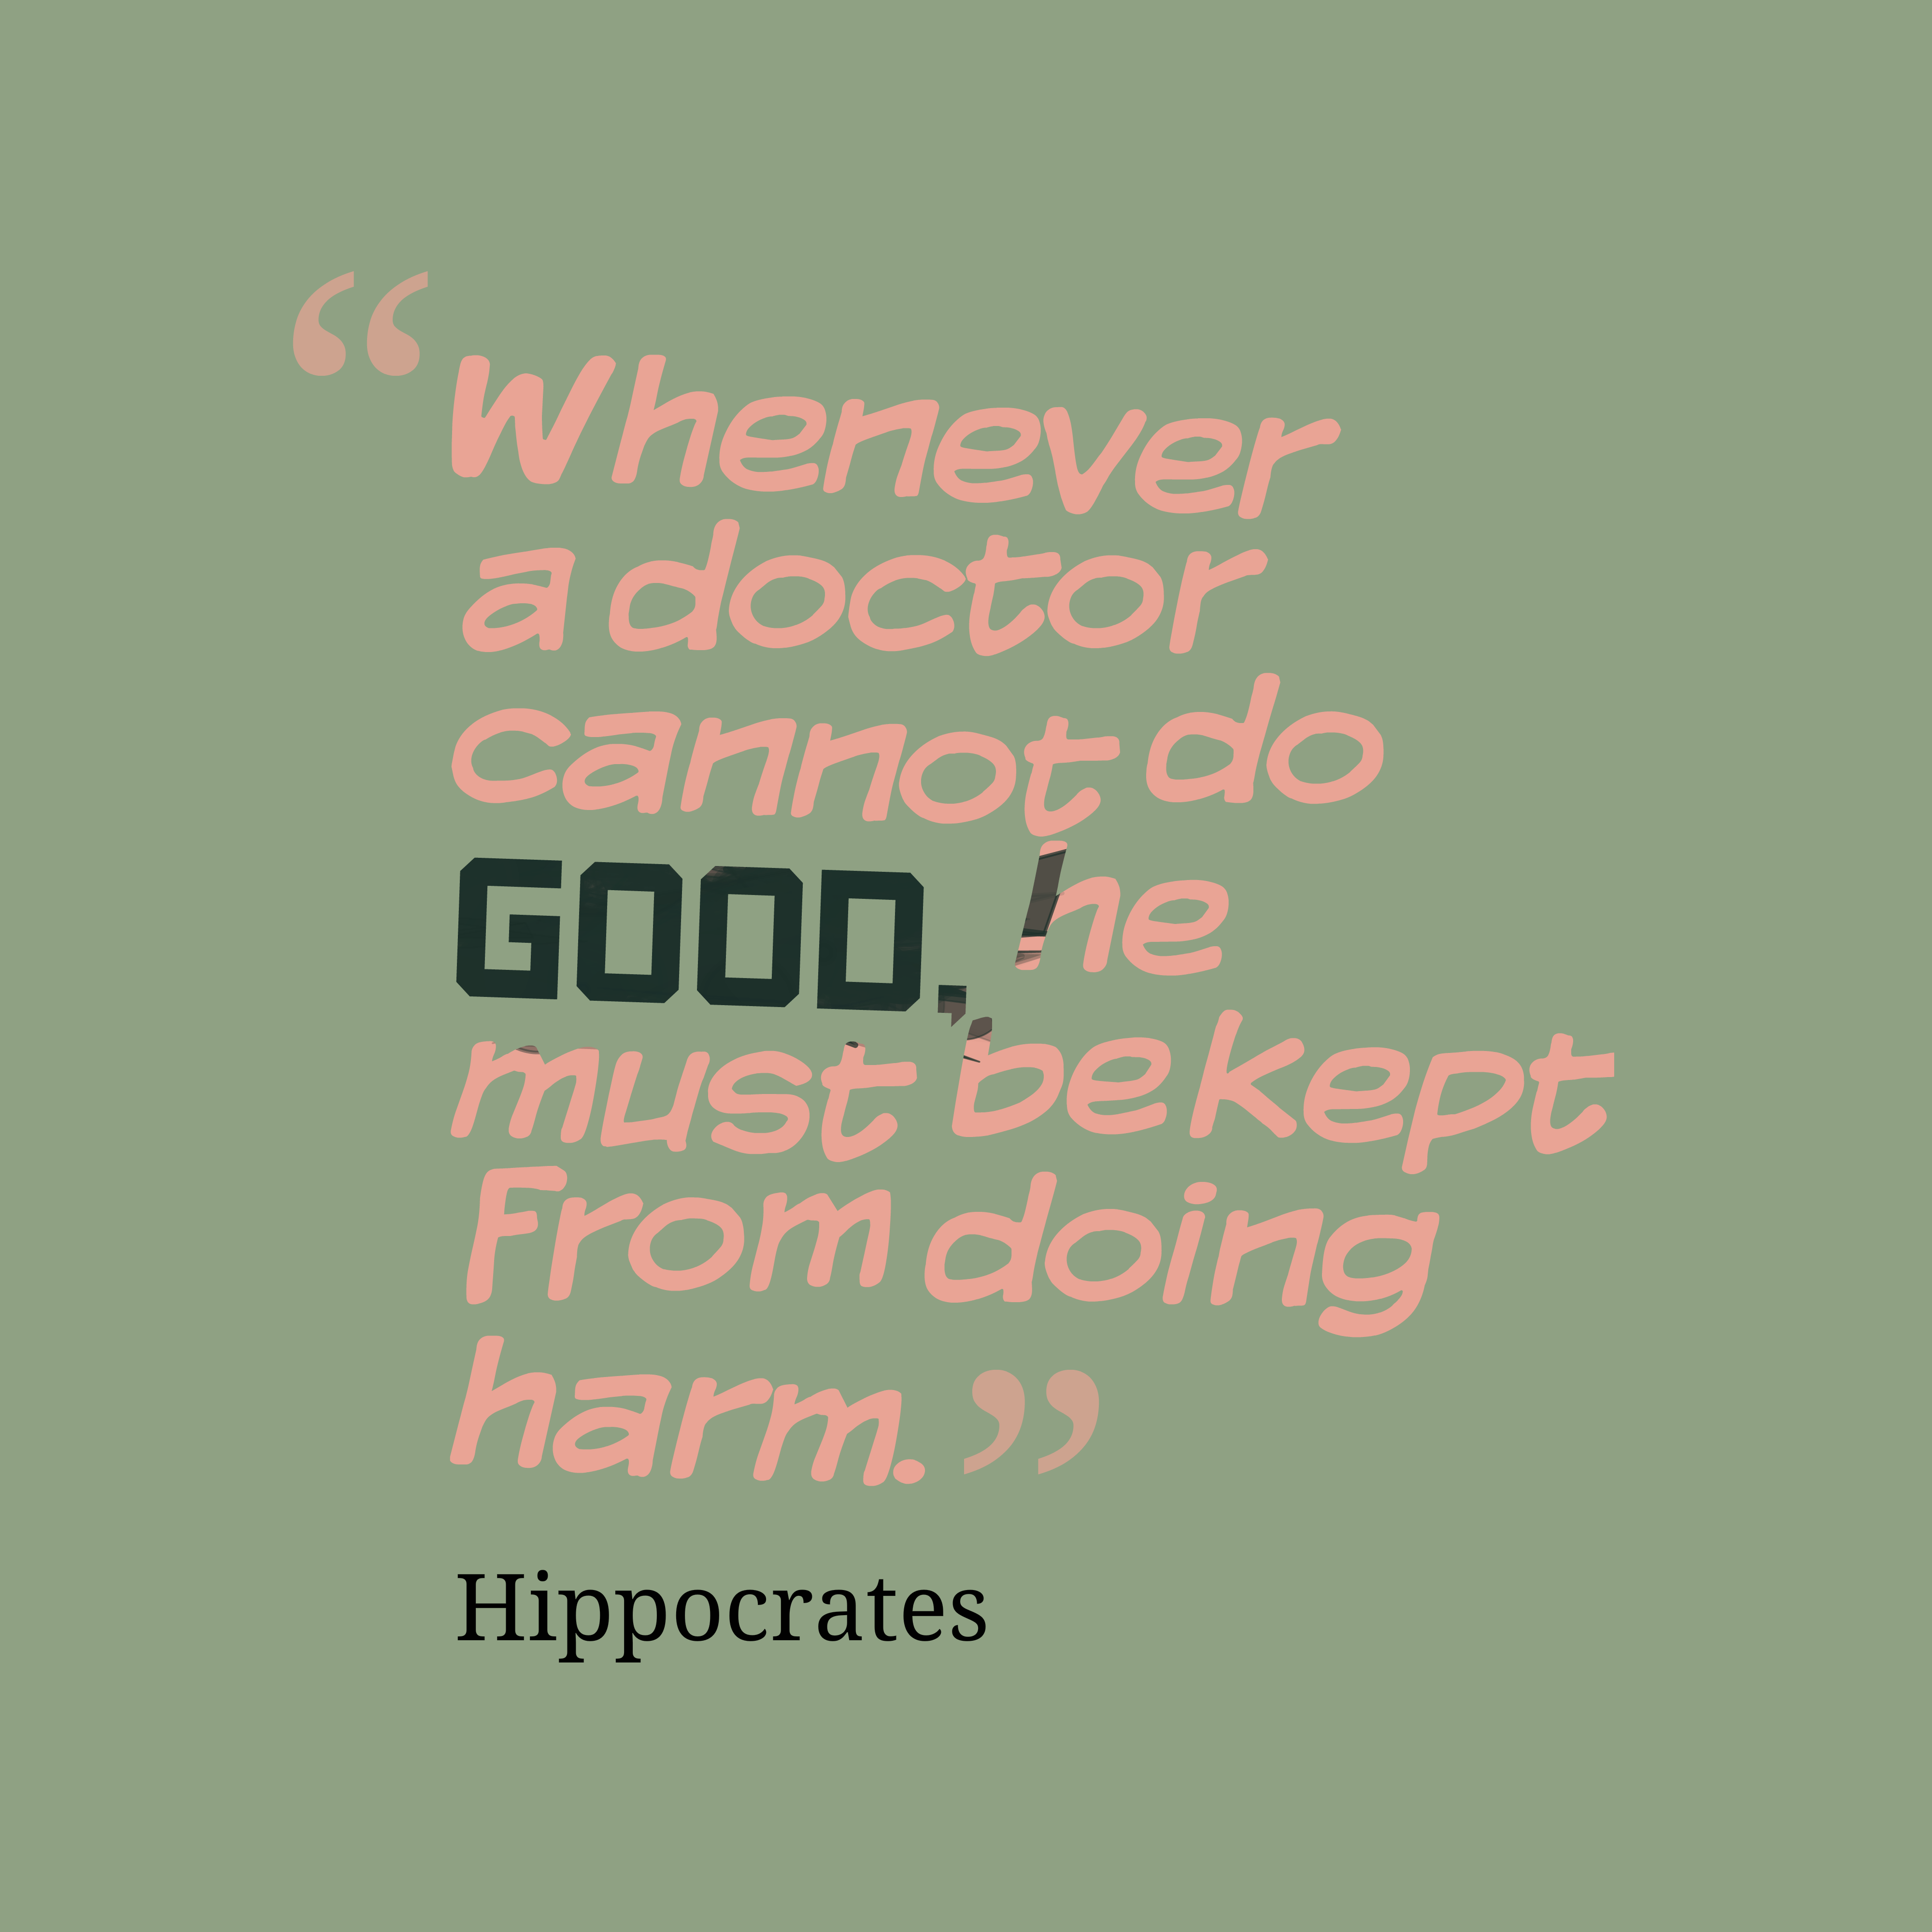 Best Doctor Who Quotes | Hippocrates Quote About Medical